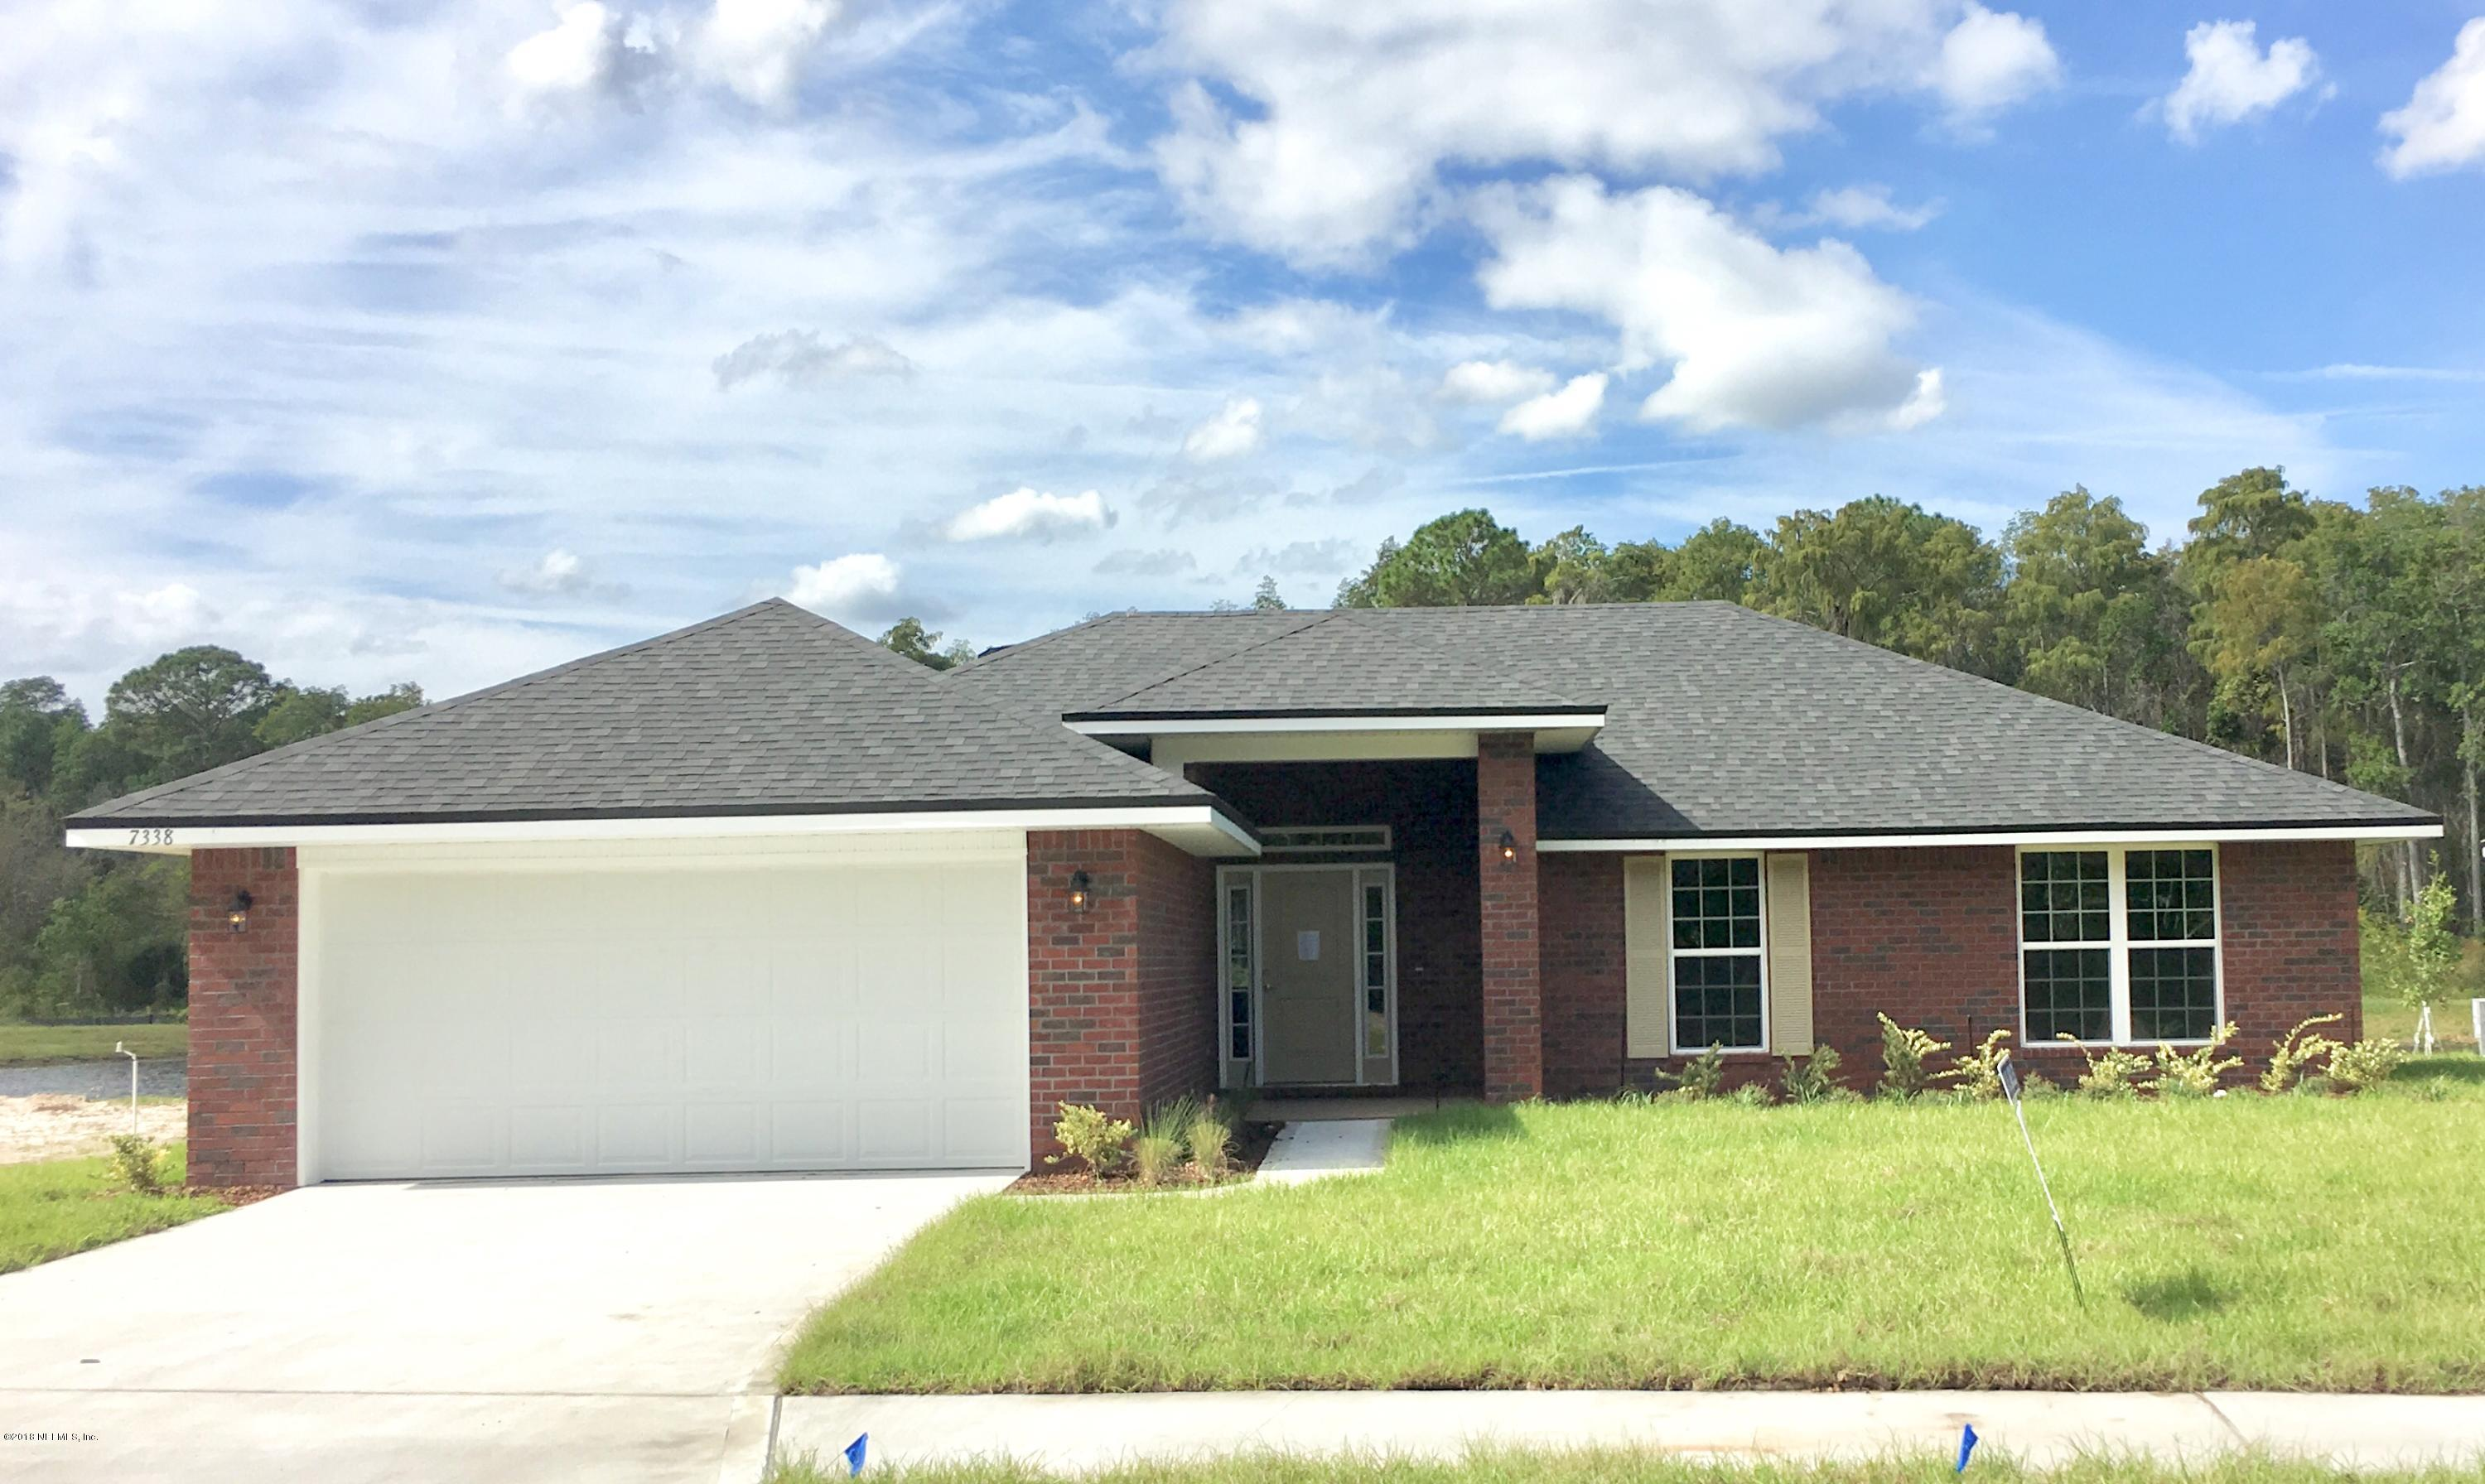 7338 ZAIN MICHAEL, JACKSONVILLE, FLORIDA 32222, 4 Bedrooms Bedrooms, ,2 BathroomsBathrooms,Residential - single family,For sale,ZAIN MICHAEL,943288